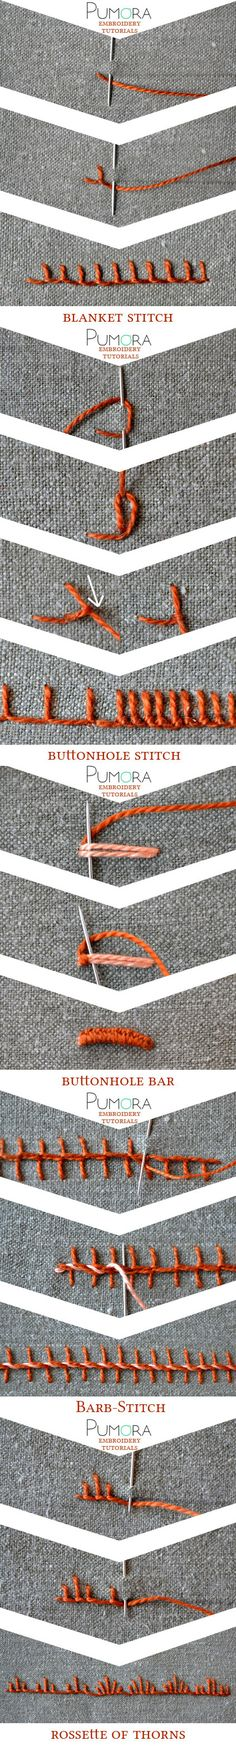 embroidery tutorials: blanket stitch with variations broderie, sticken, ricamo, bordado                                                                                                                                                                                 Más